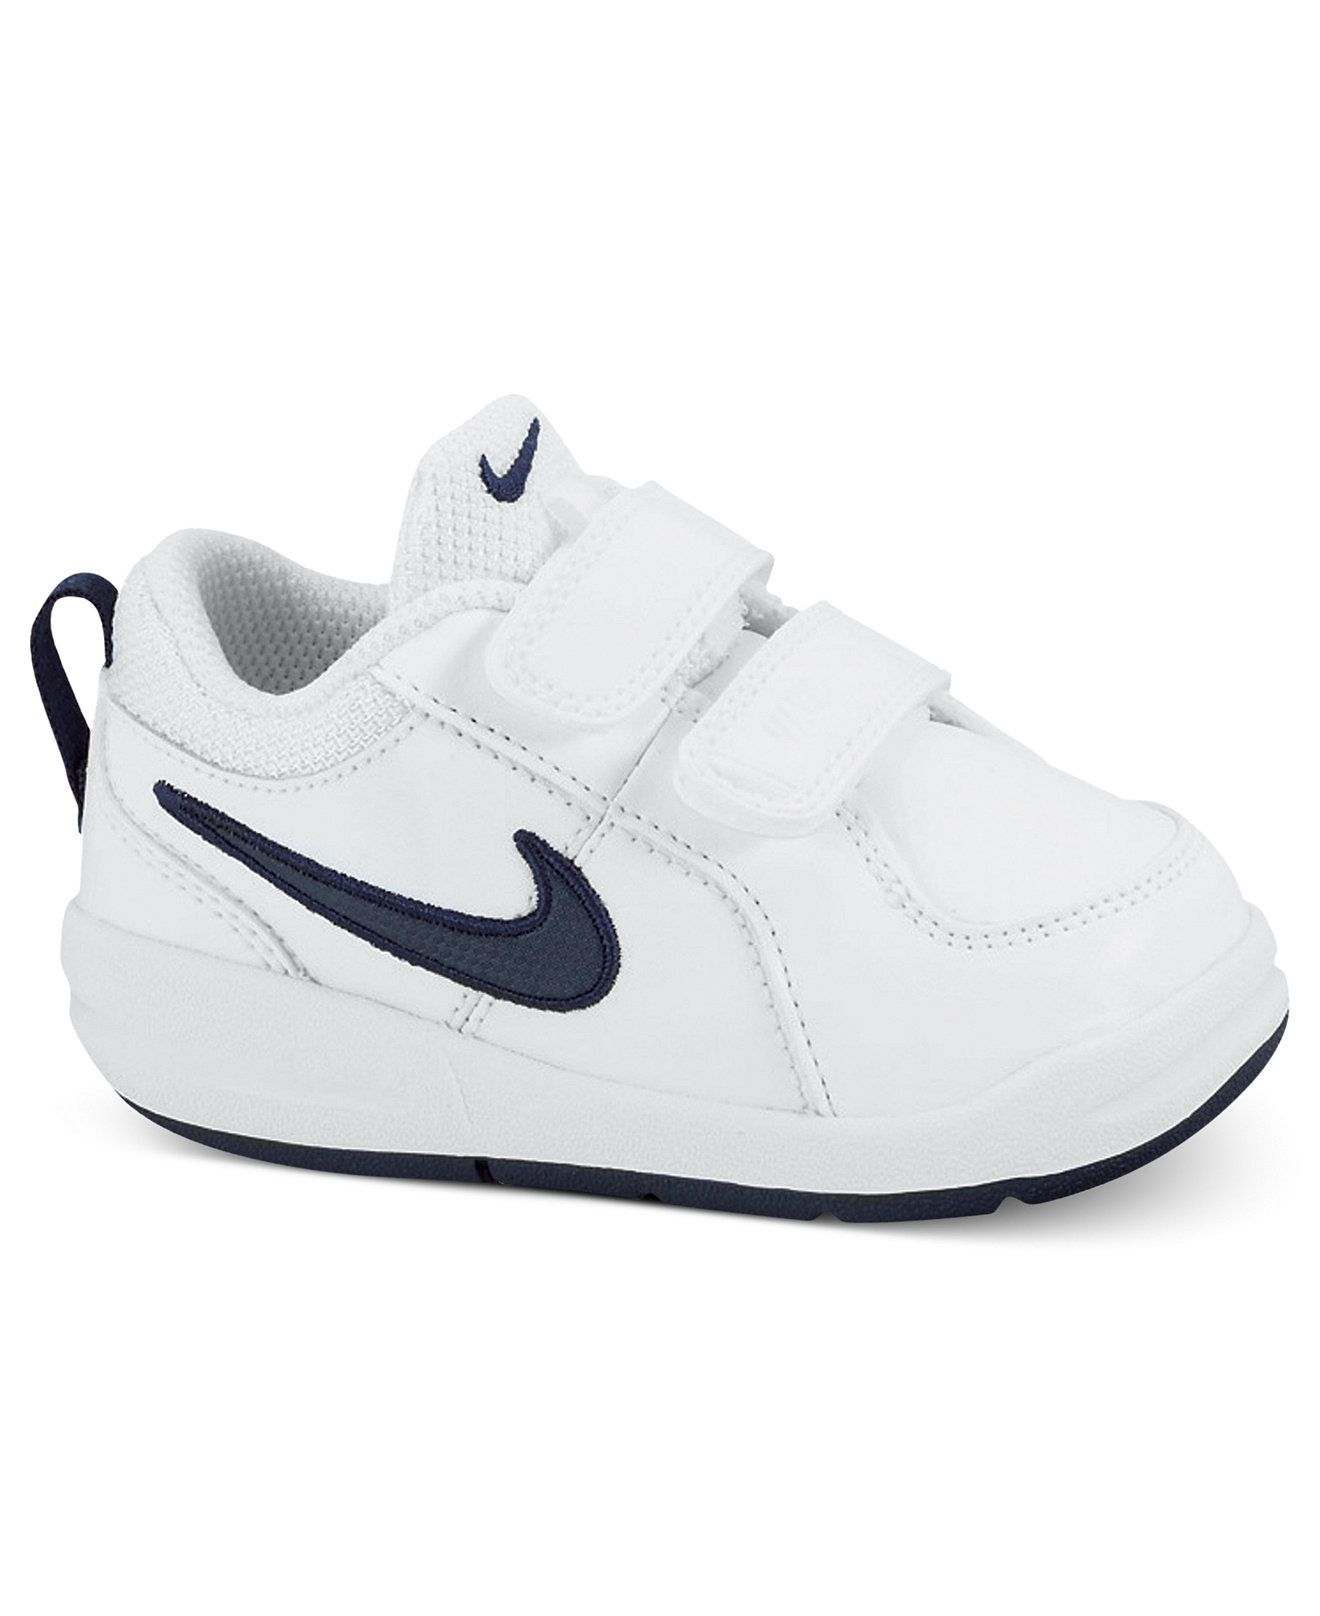 África apoyo Sui  Nike Toddler Boys' or Little Boys' Pico 4 Sneakers from Finish Line - Kids  Finish Line Athletic Shoes - Macy's | Kid shoes, Sneakers, Athletic shoes